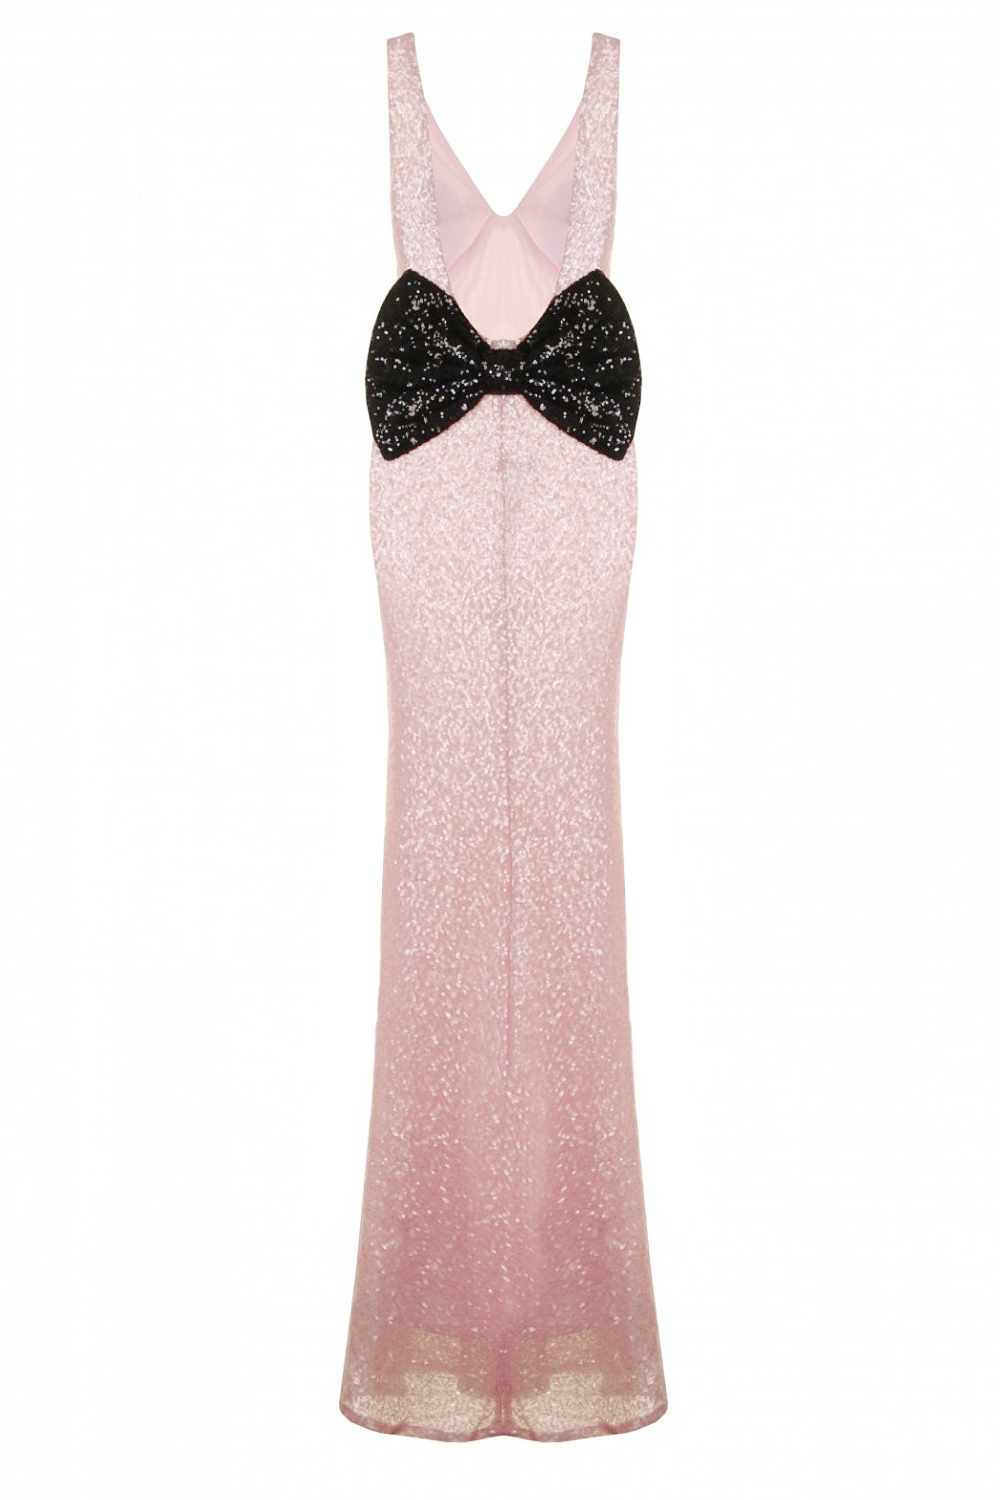 Nazz Collection Pink Sequin Marilyn Mermaid Dress